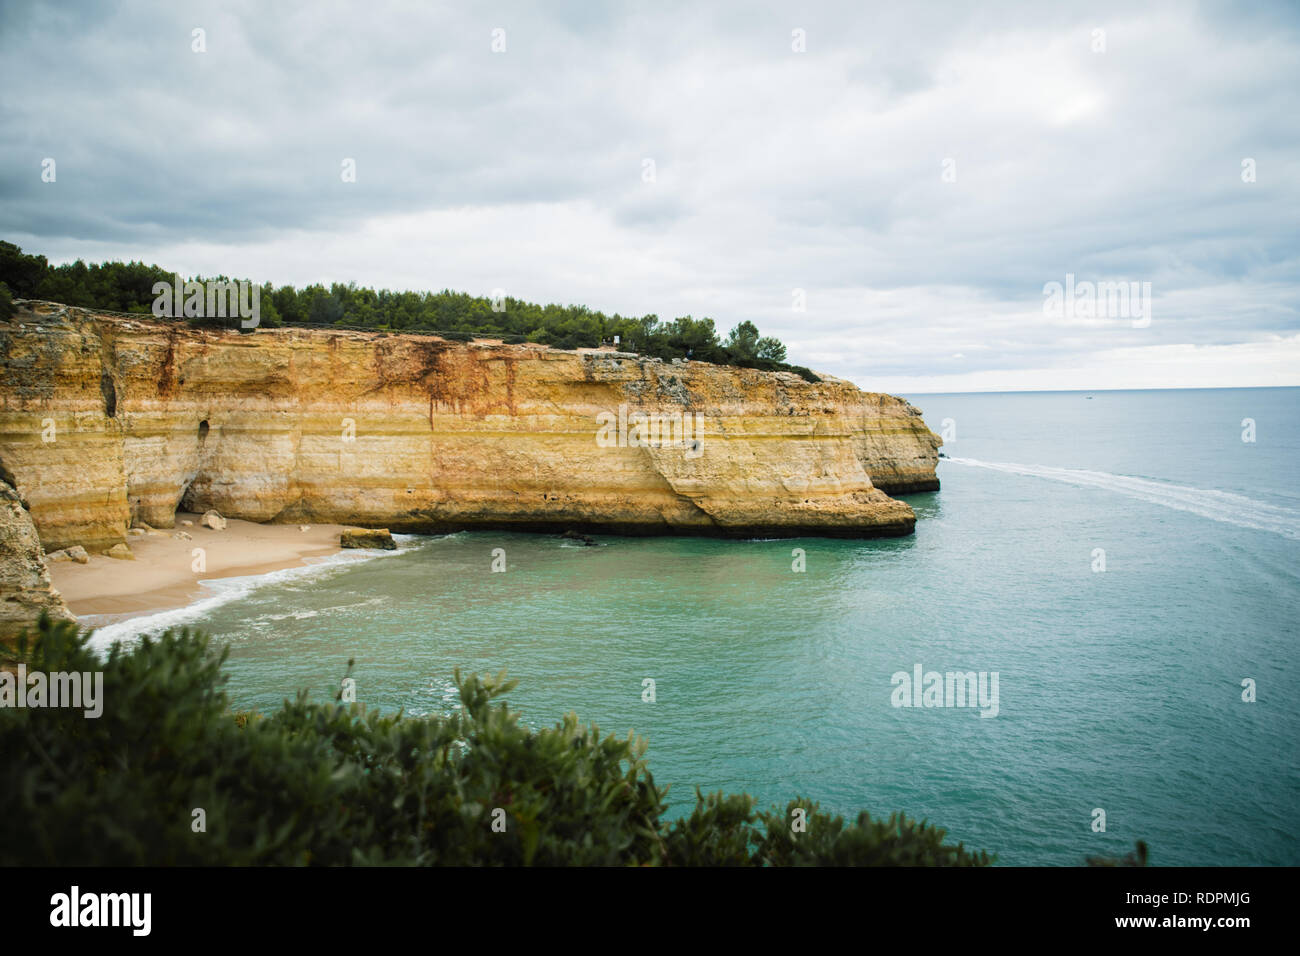 Beach and cliffs - Stock Image